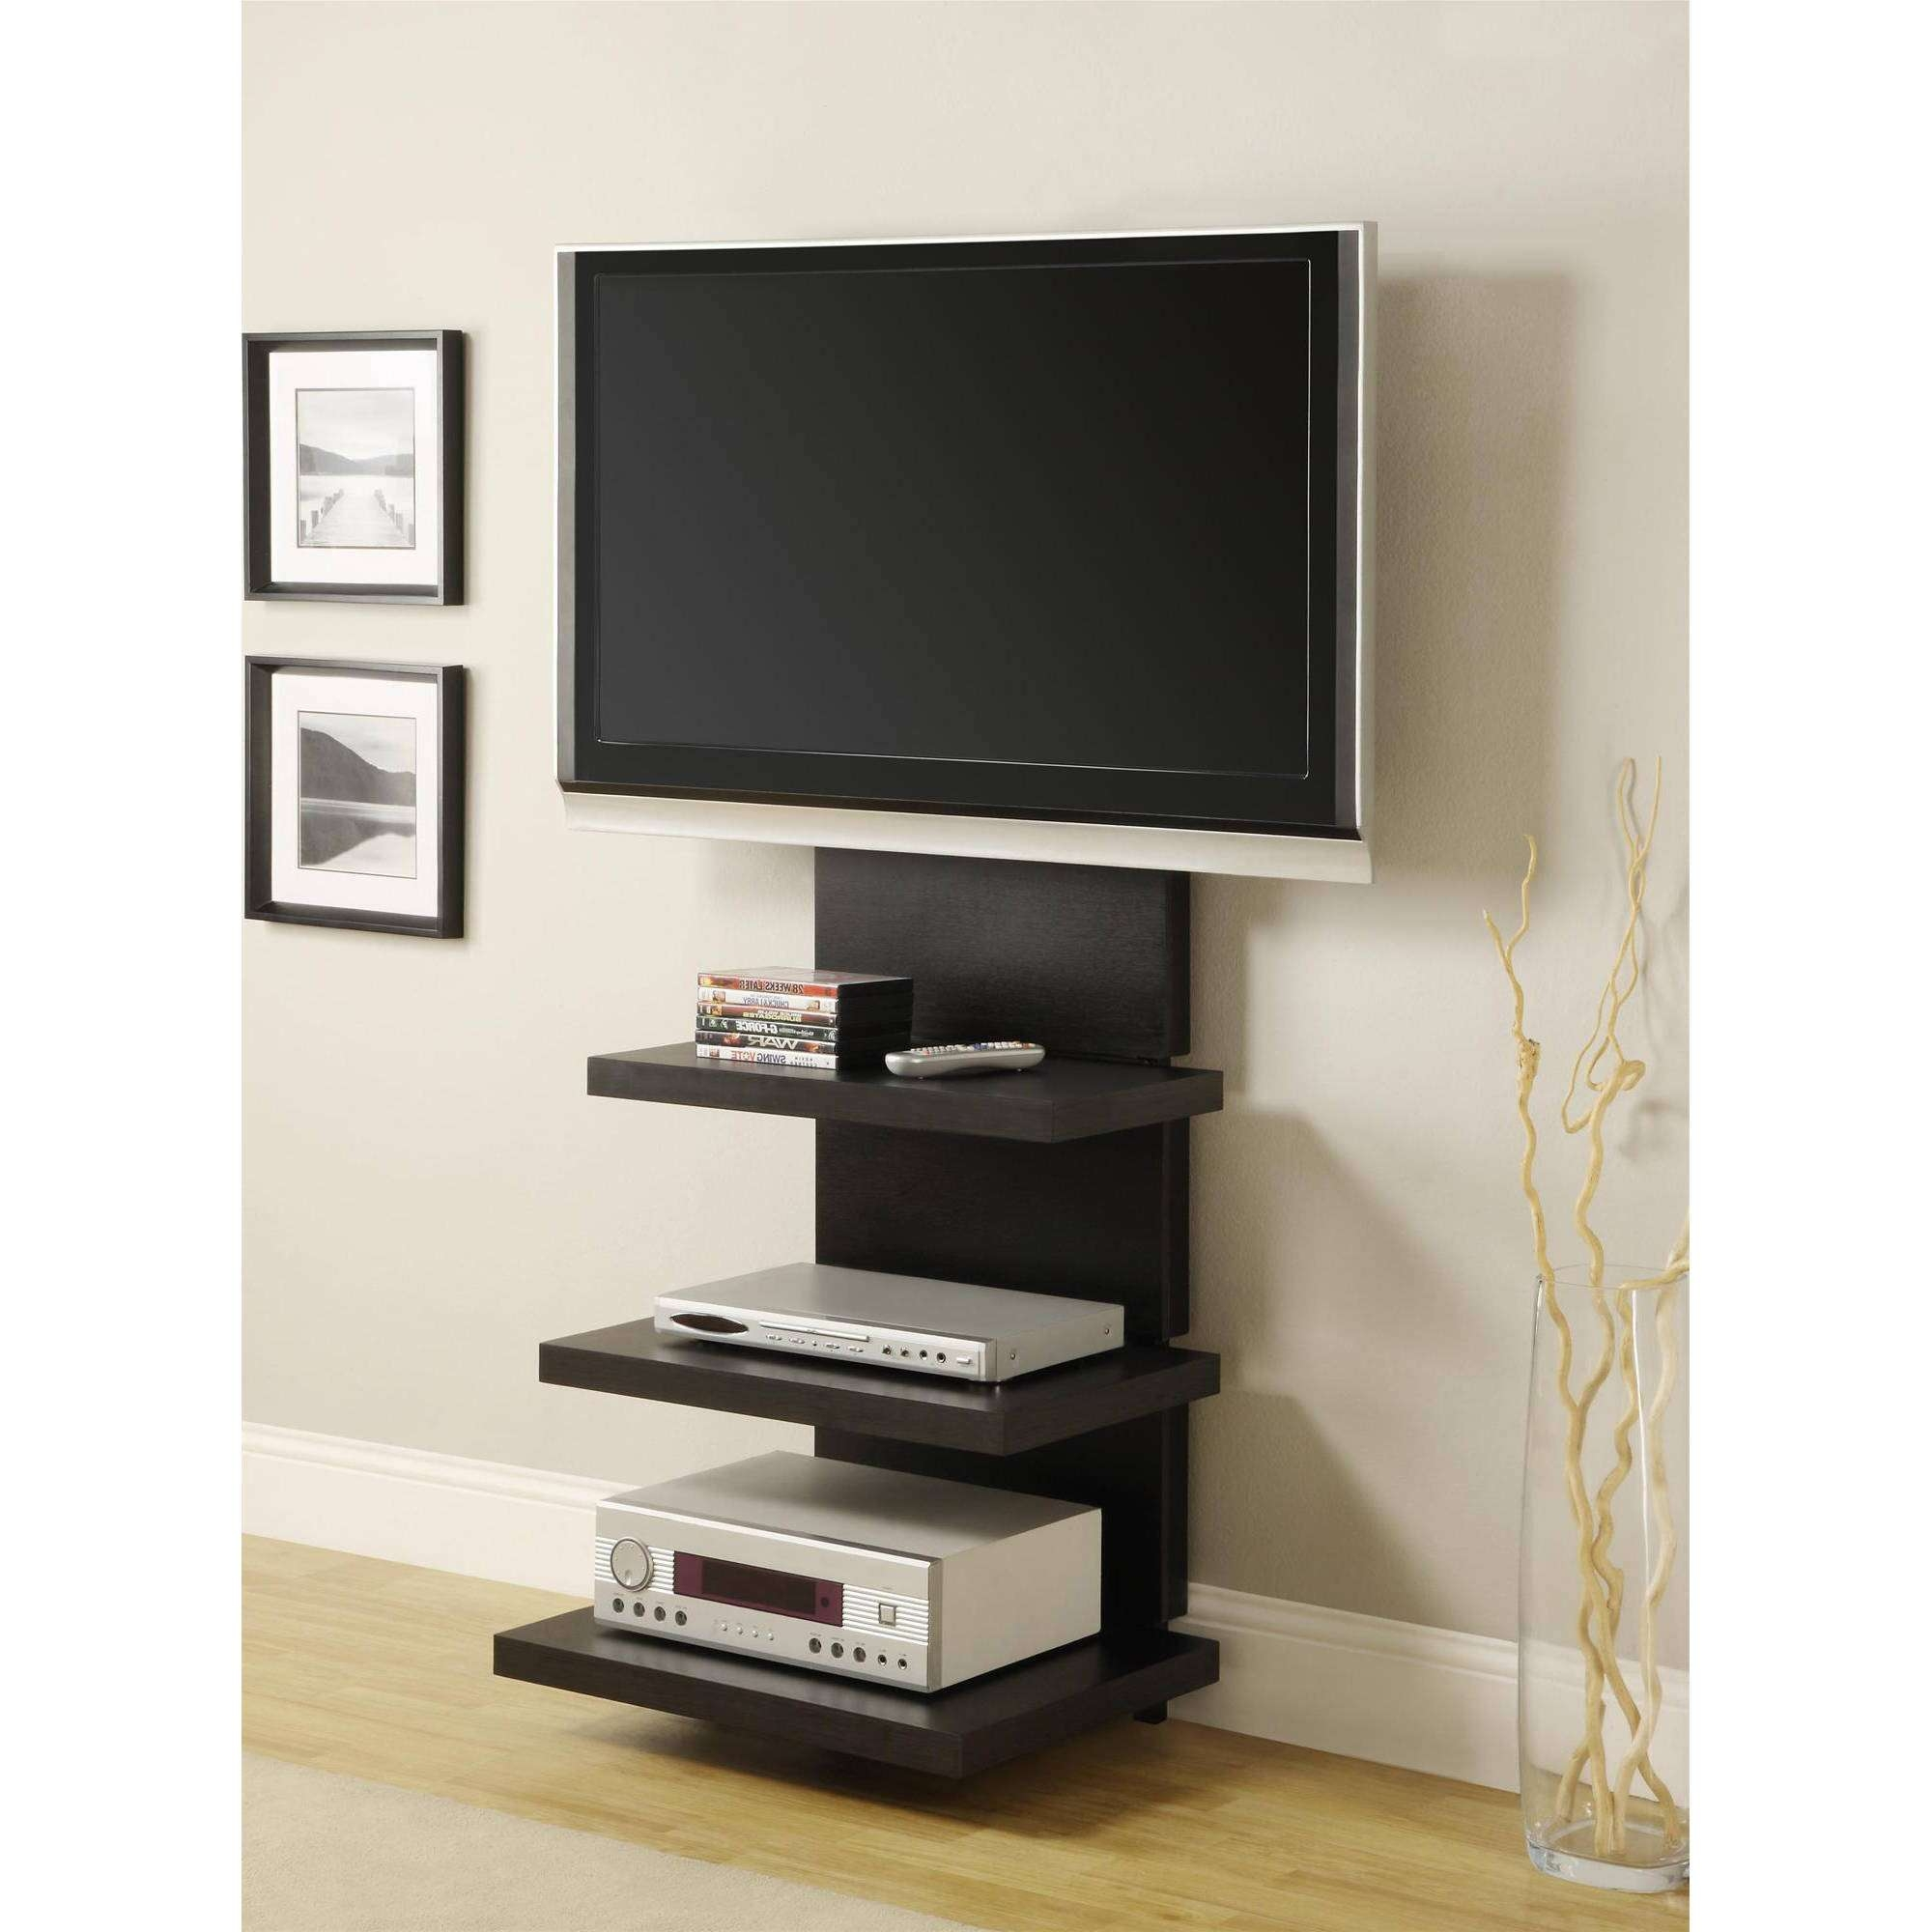 Ameriwood Home Elevation Altramount Tv Stand For Tvs Up To 60 In 24 Inch Corner Tv Stands (View 8 of 15)